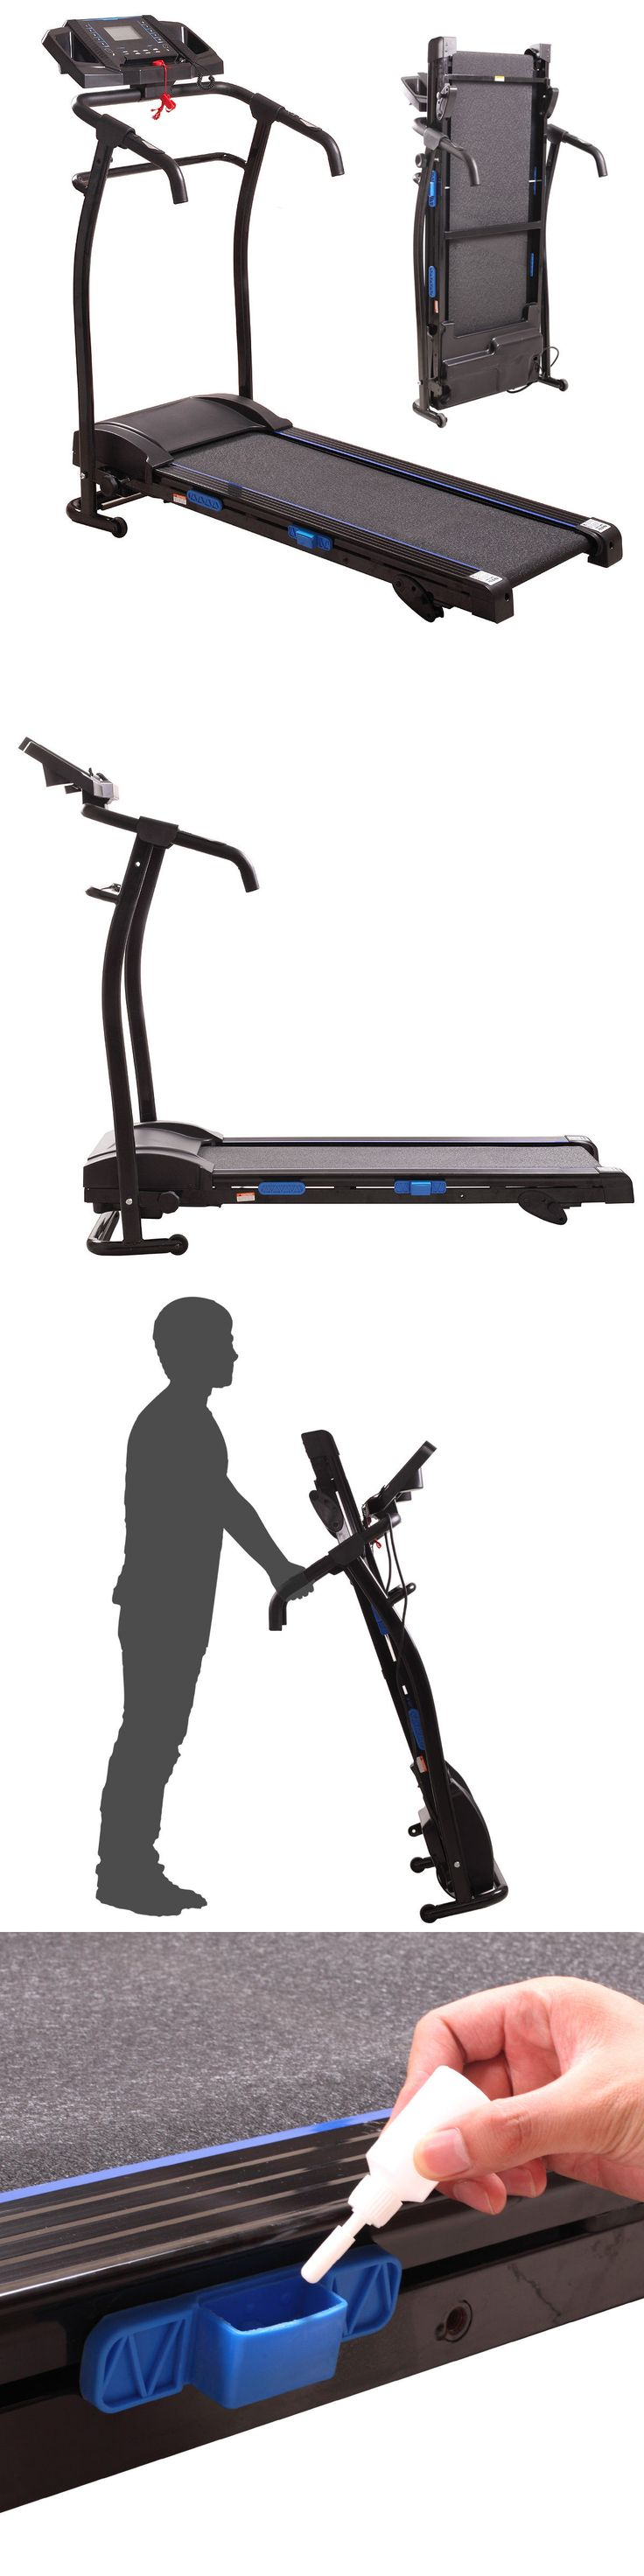 Treadmills 15280: 1500W Folding Electric Treadmill W Lcd Display Motorized Running Machine Black -> BUY IT NOW ONLY: $294.99 on eBay!